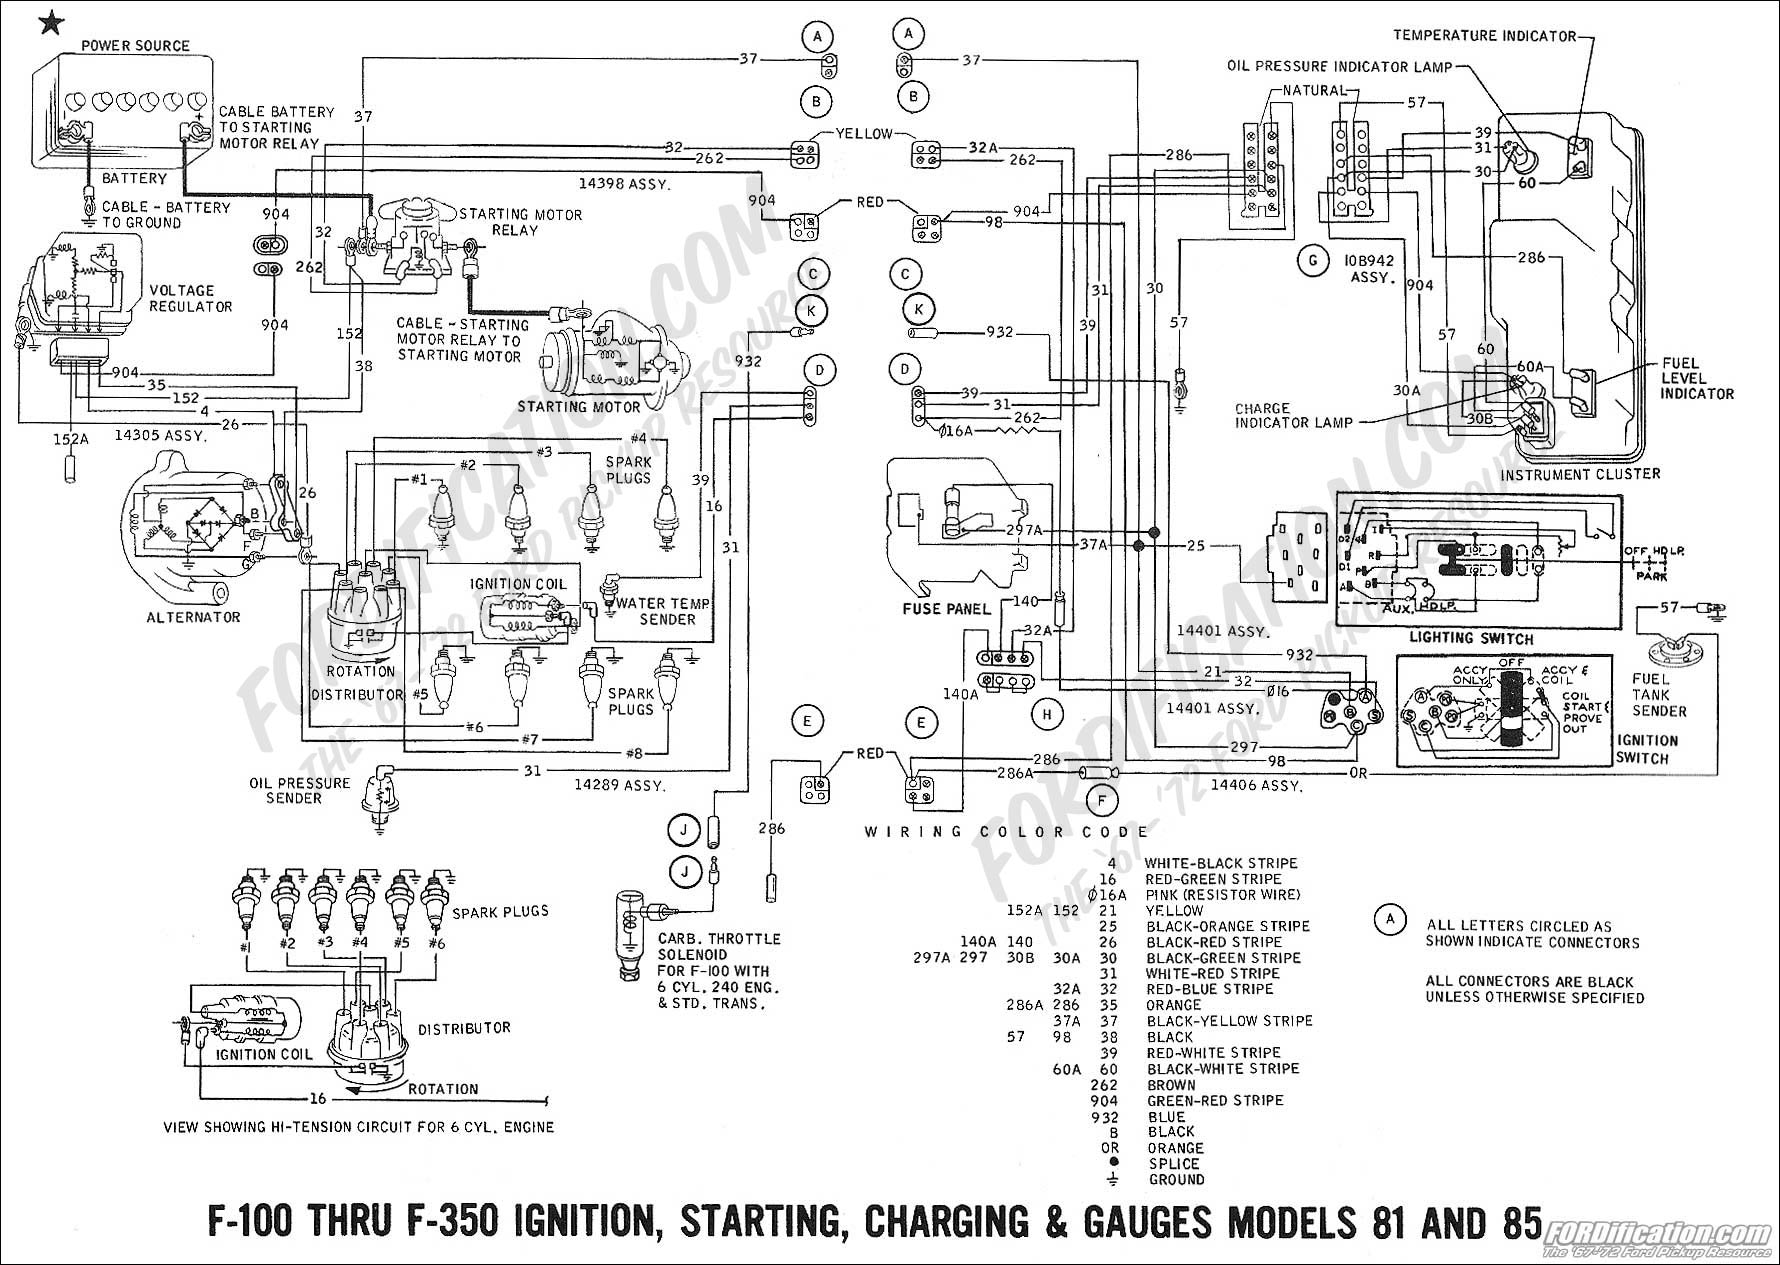 69 torino wiring diagram schematics wiring diagrams u2022 rh seniorlivinguniversity co Ford Ignition Switch Wiring Diagram 71 Ford F100 Wiring Diagram